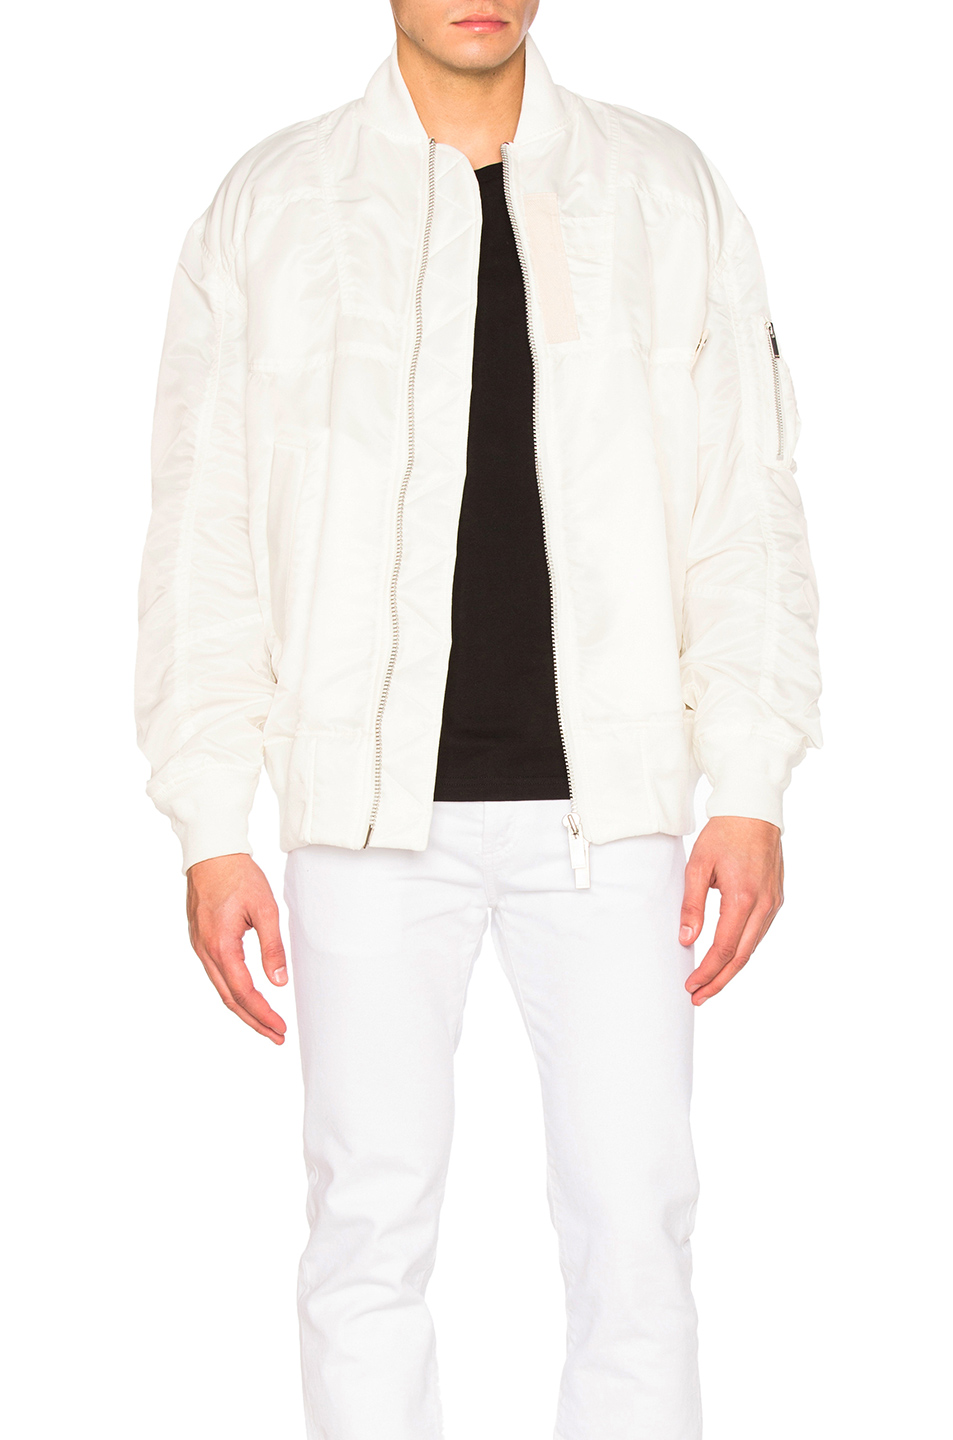 Sacai MA1 Blouson in White